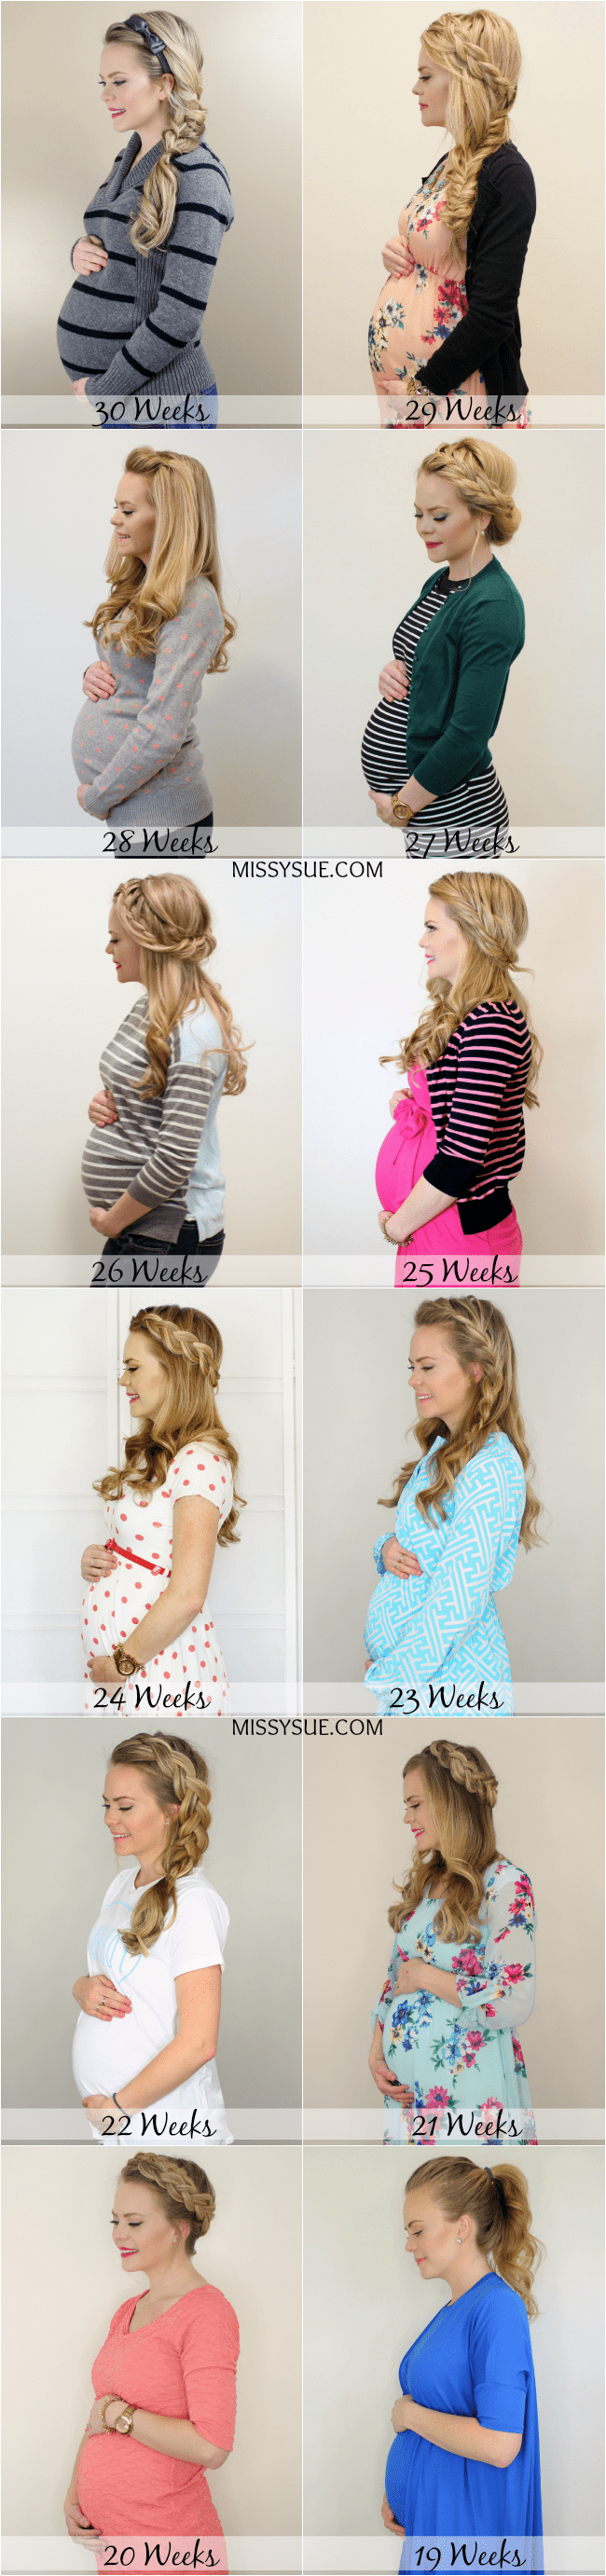 30 Weeks Pregnancy Update